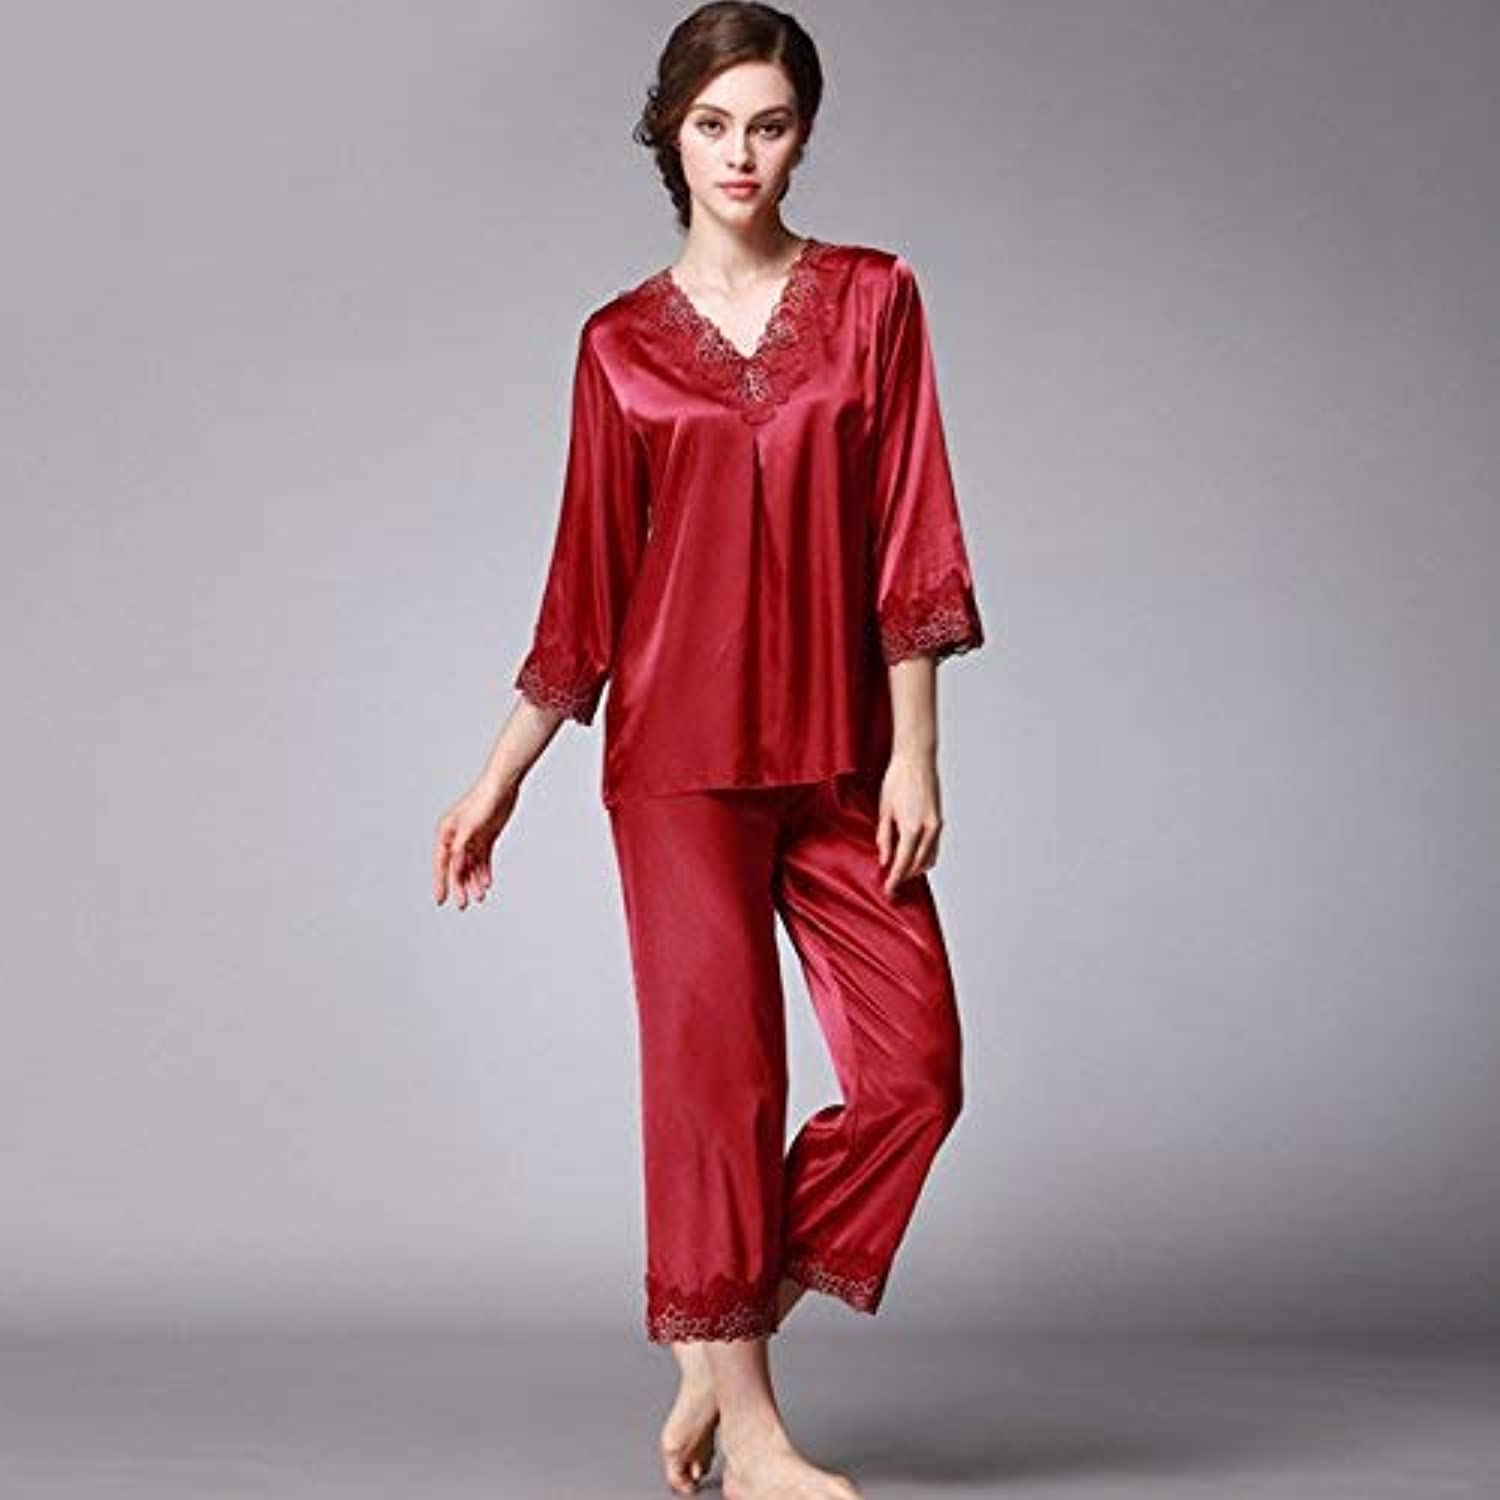 DALAI Pajamas Women's Spring and Autumn Silk Home Wear Long Sleeve Pants Two Piece Set (color   Burgundy, Size   XL) (color   Burgundy, Size   XLarge)